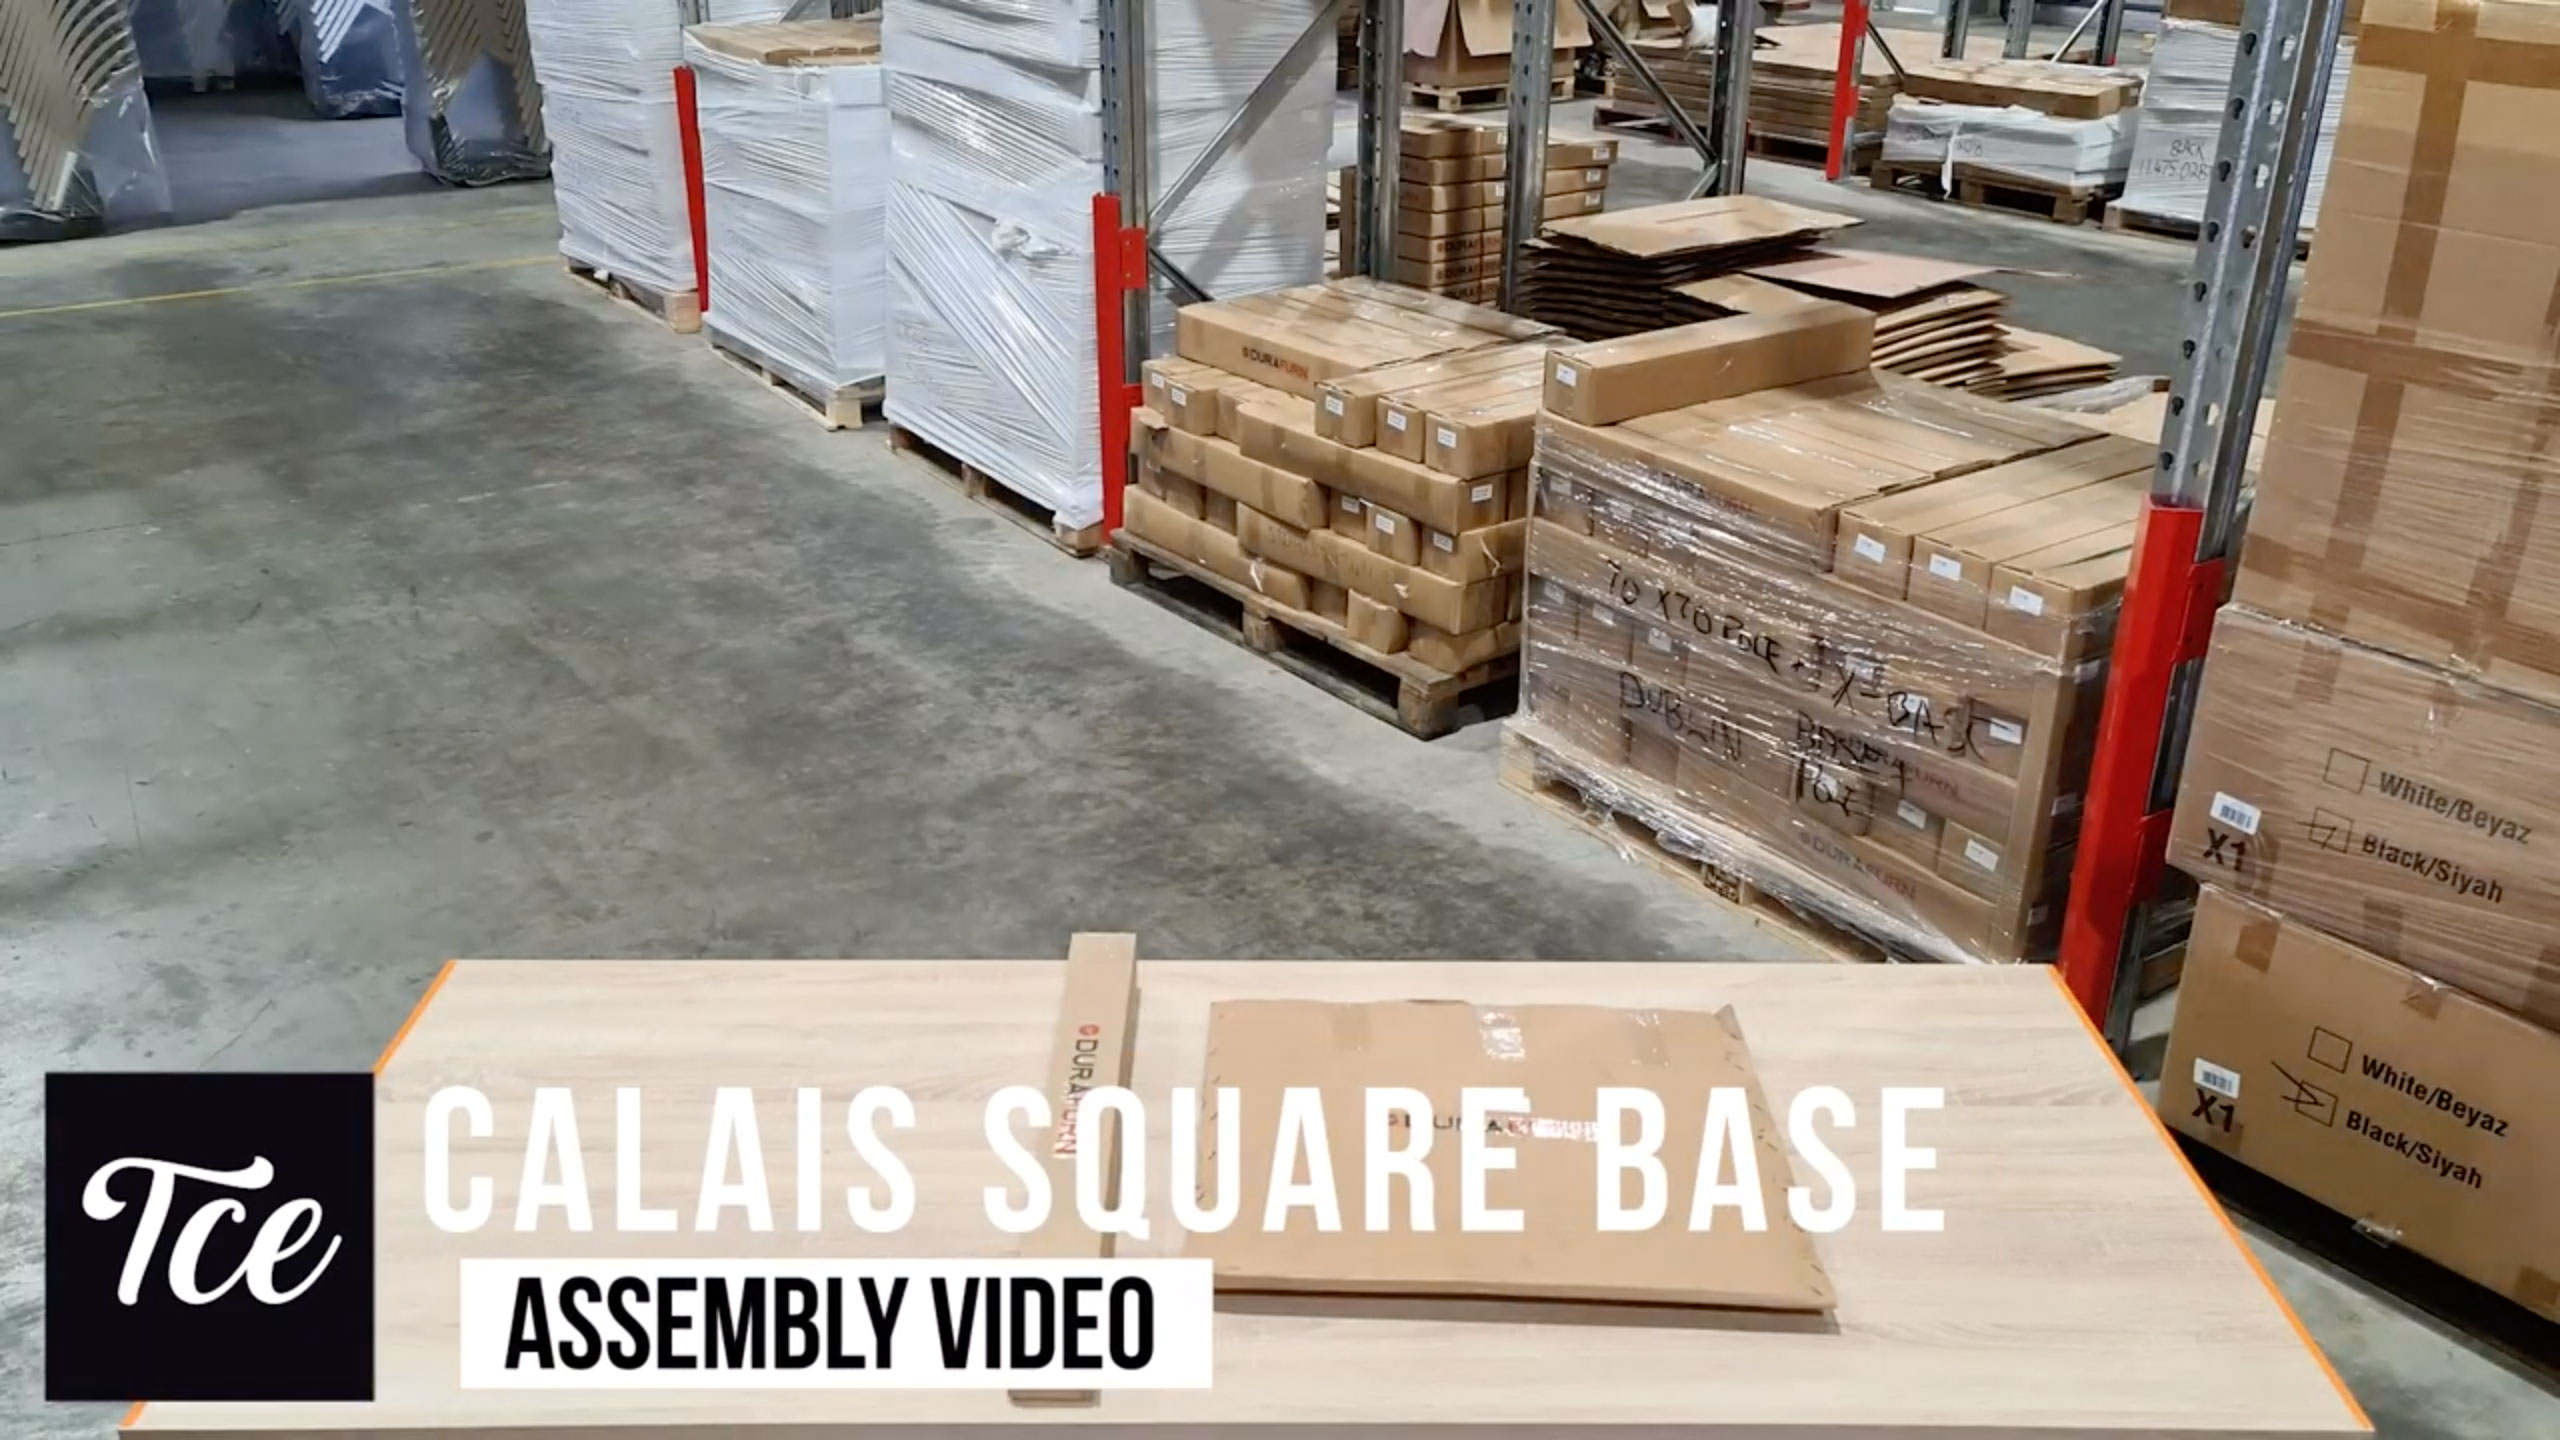 Assembly of the Calais Base